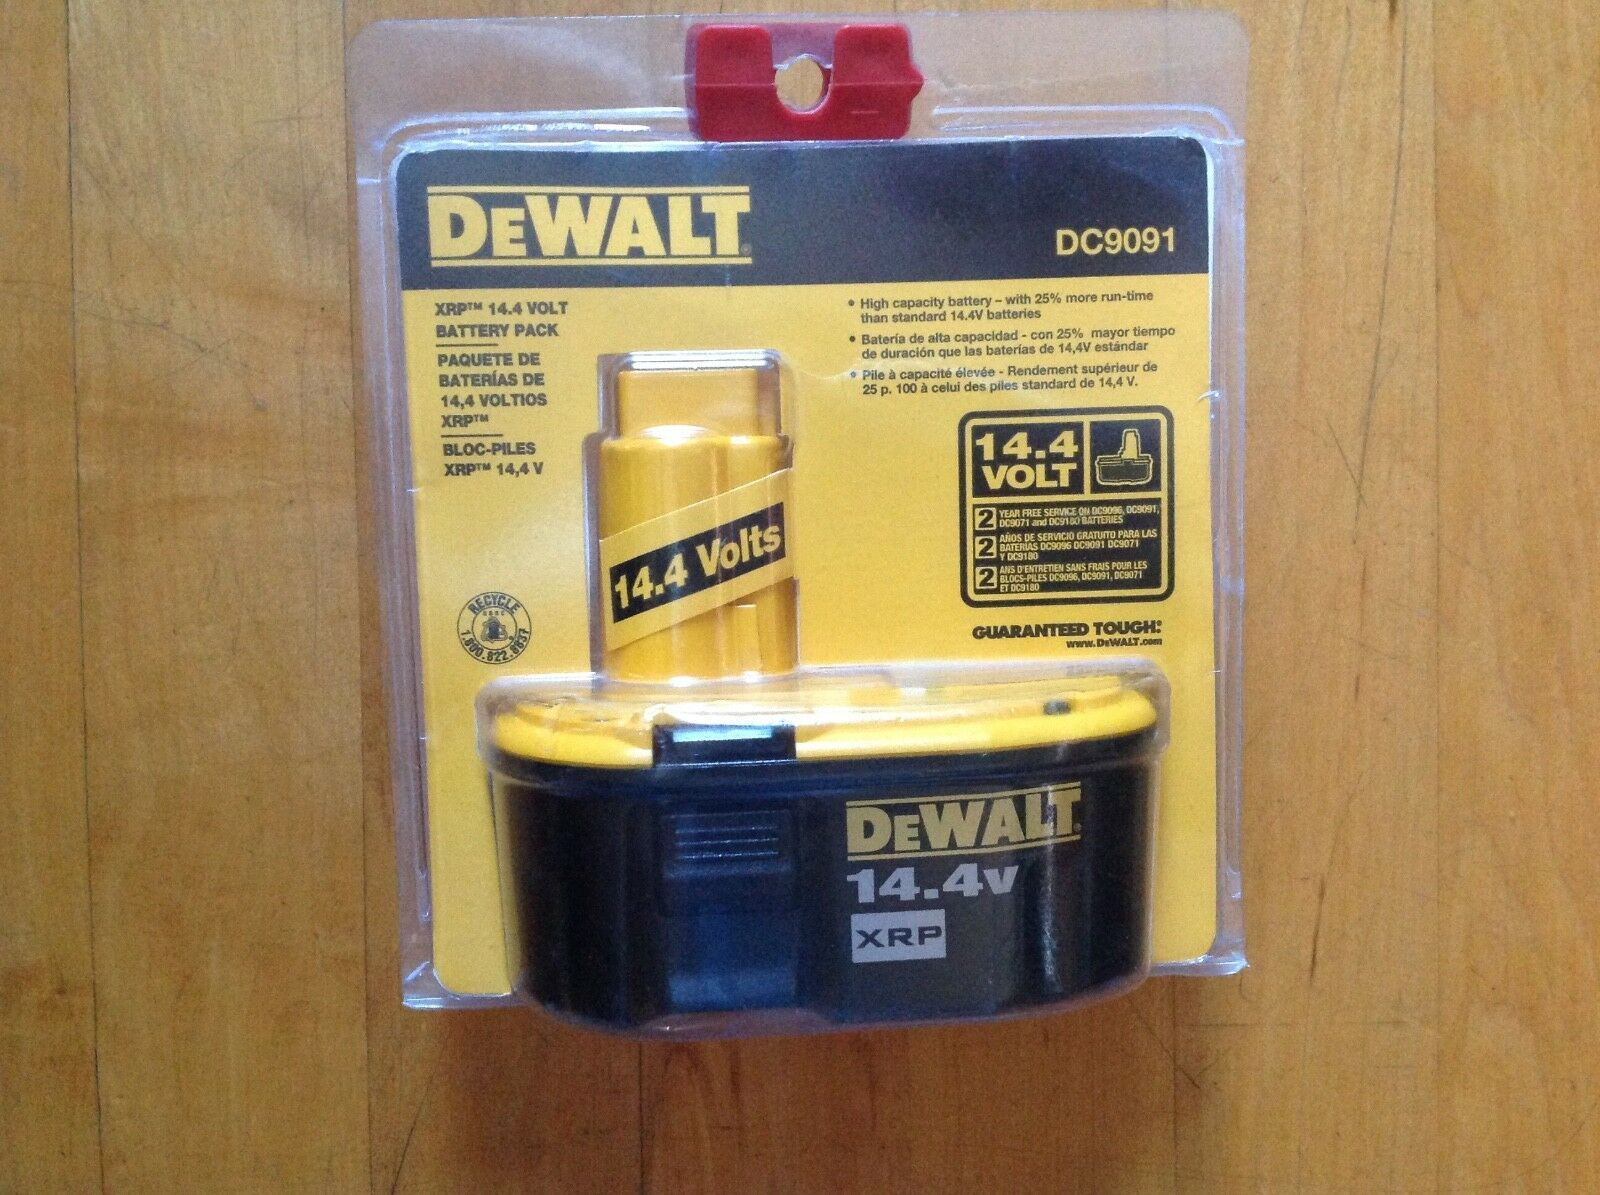 DeWALT DC9091 14.4V 2.4 Amp Hour XRP Cordless Tool Rechargeable Battery New image 4